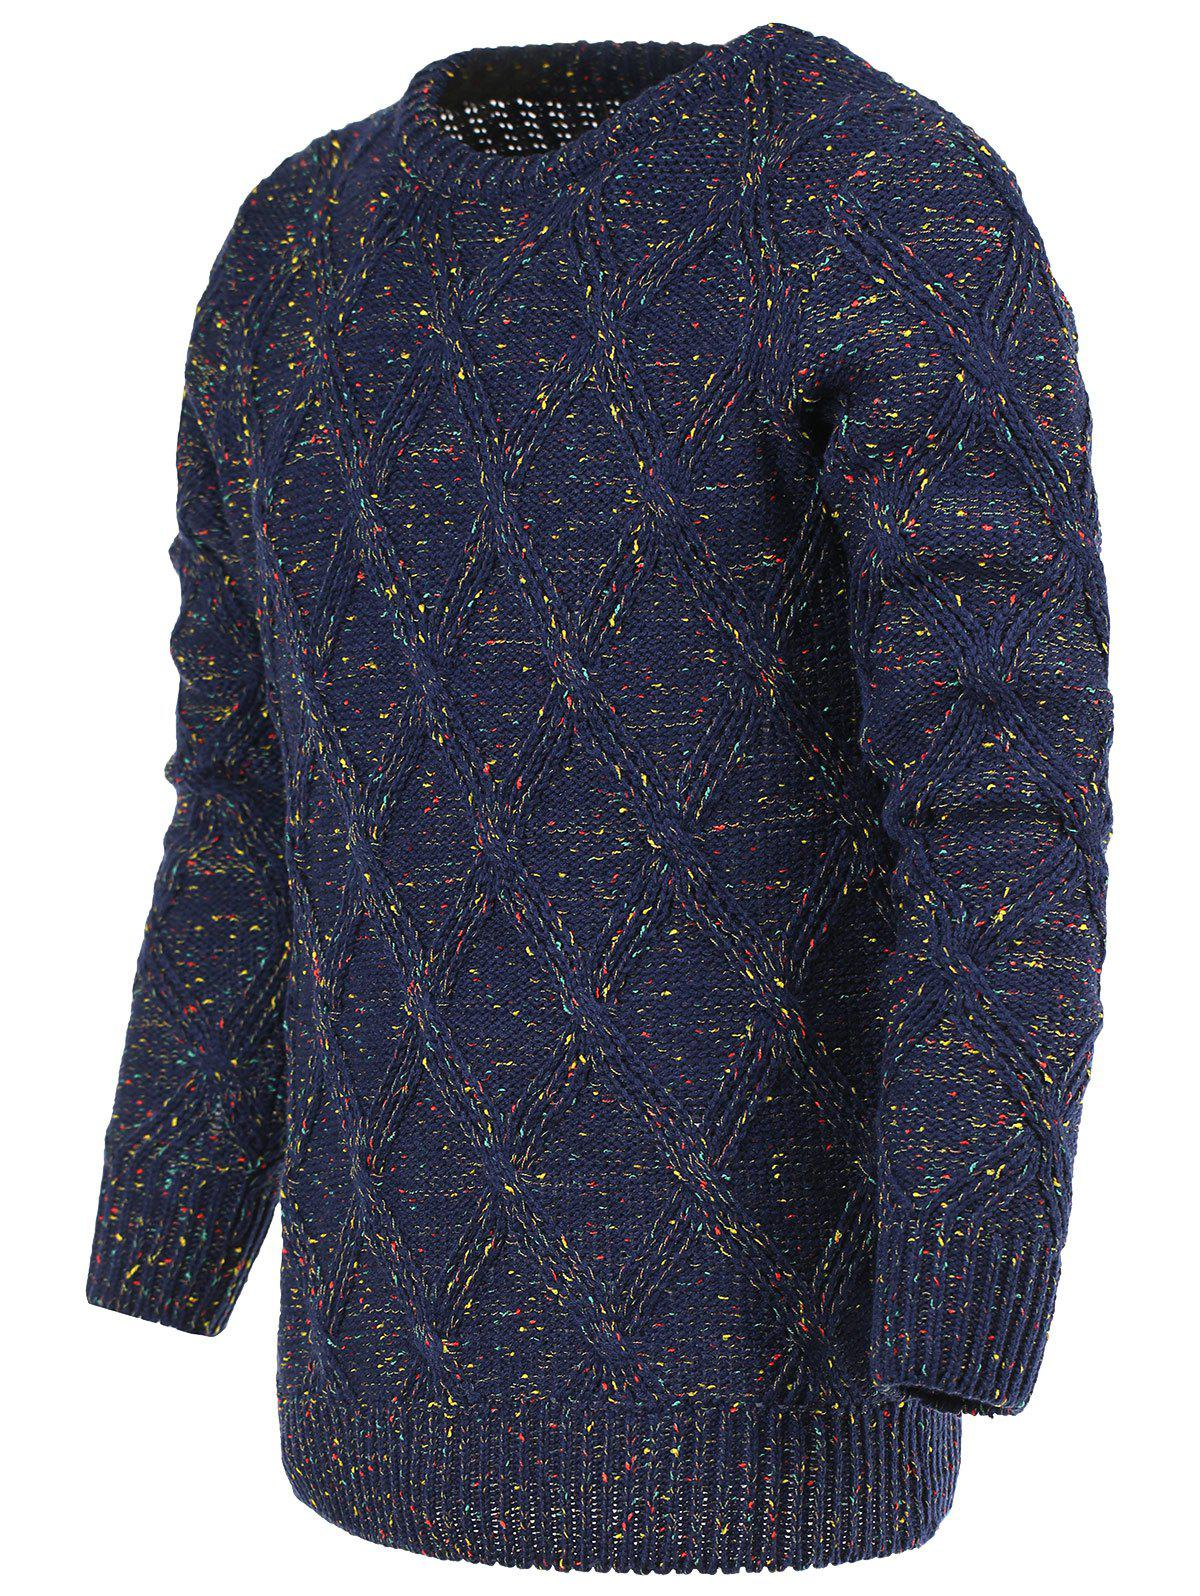 Heathered Geometric Pattern Crew Neck Long Sleeve Men's Sweater - COLORMIX M